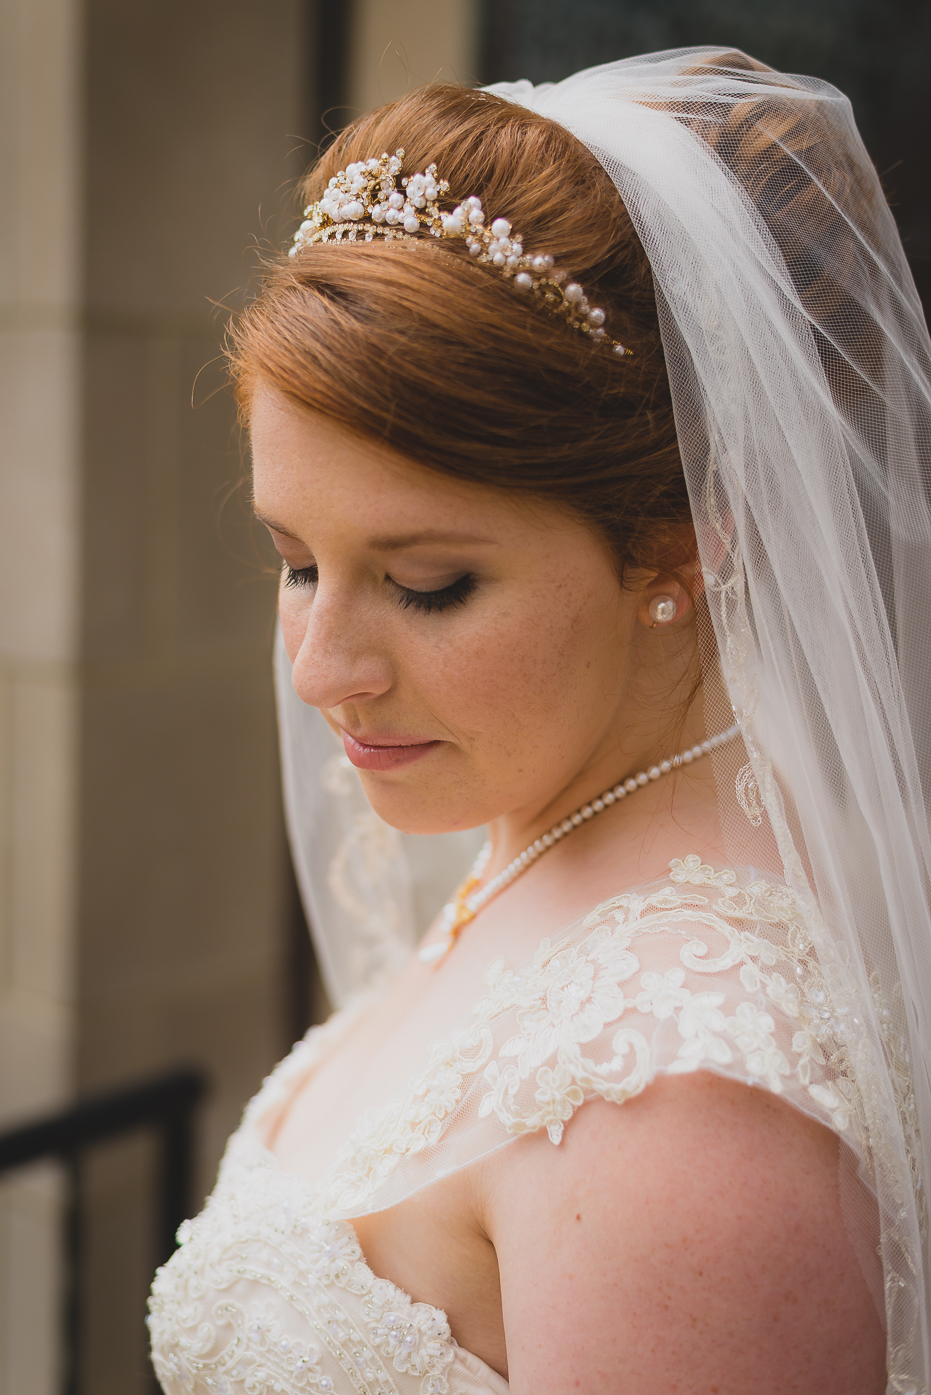 Bride with vail and pearl headband